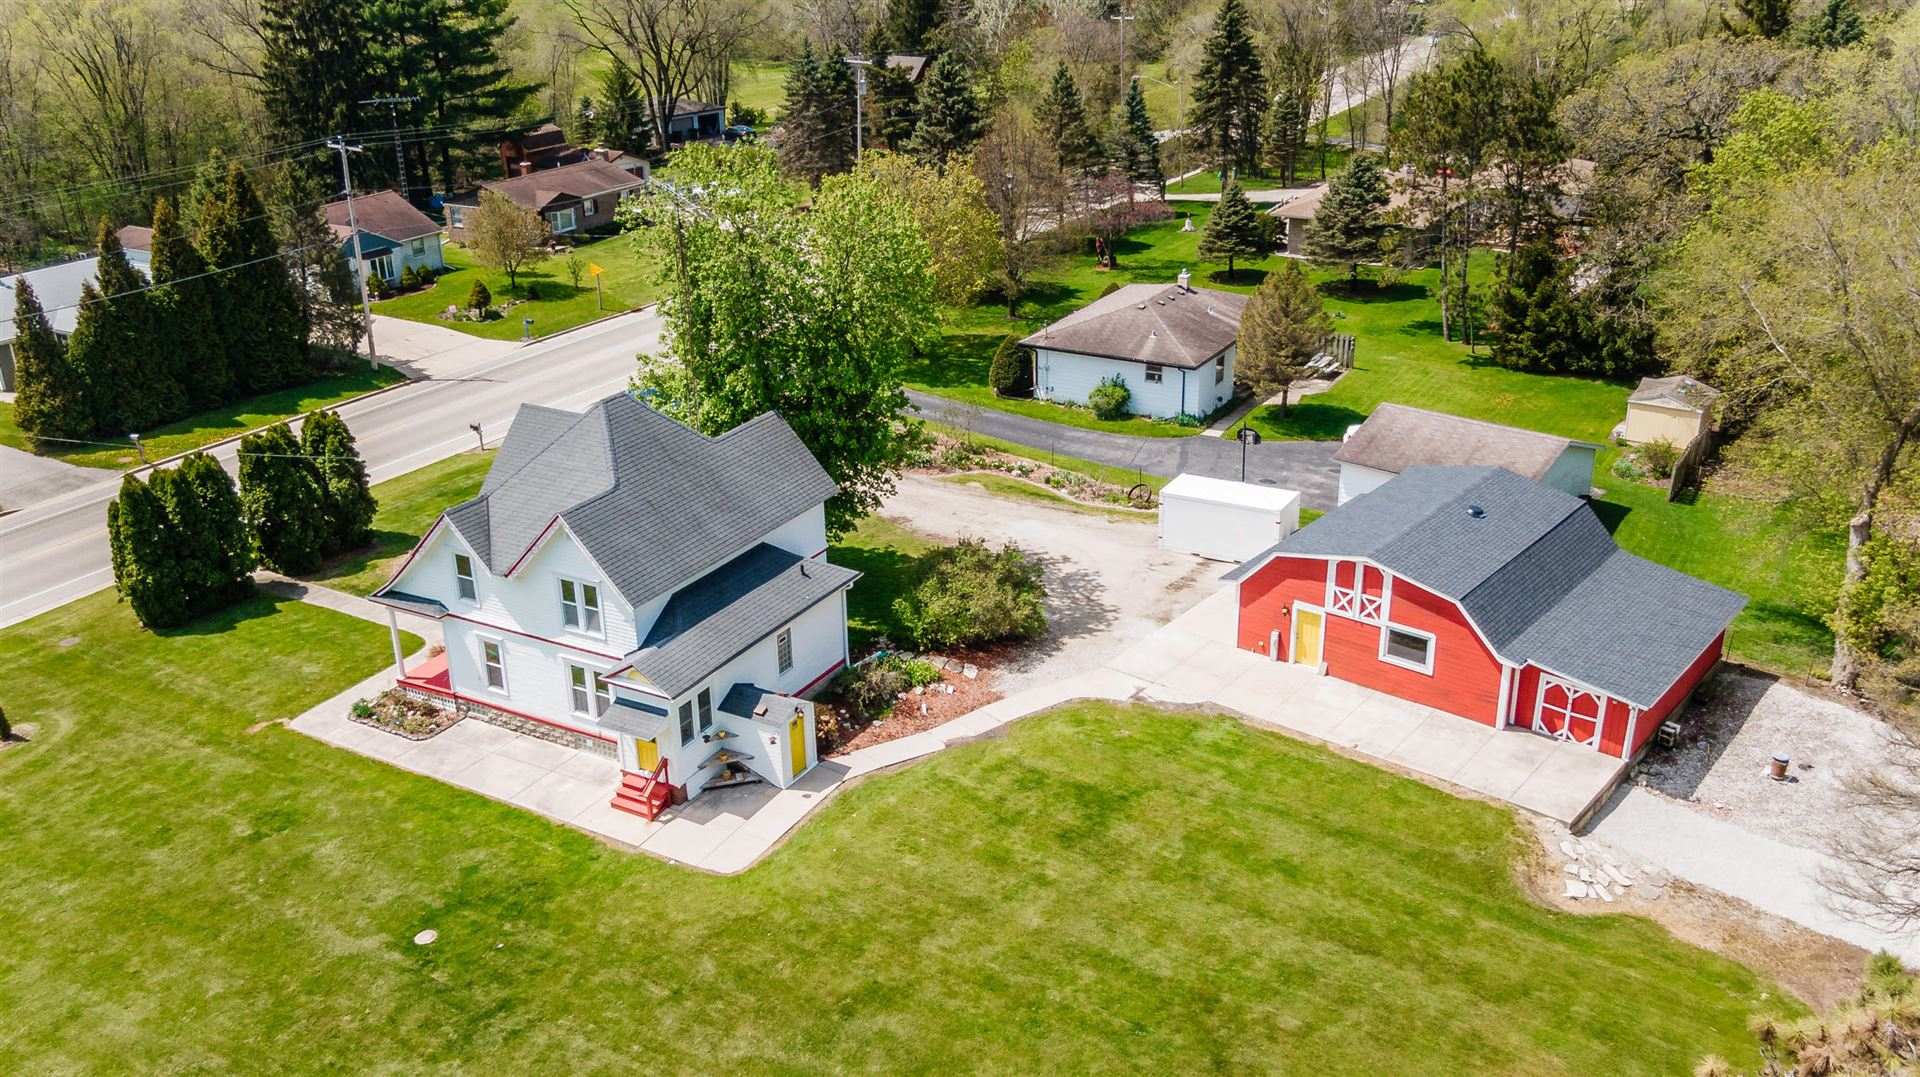 3022 North St, East Troy, WI 53120 - #: 1689312